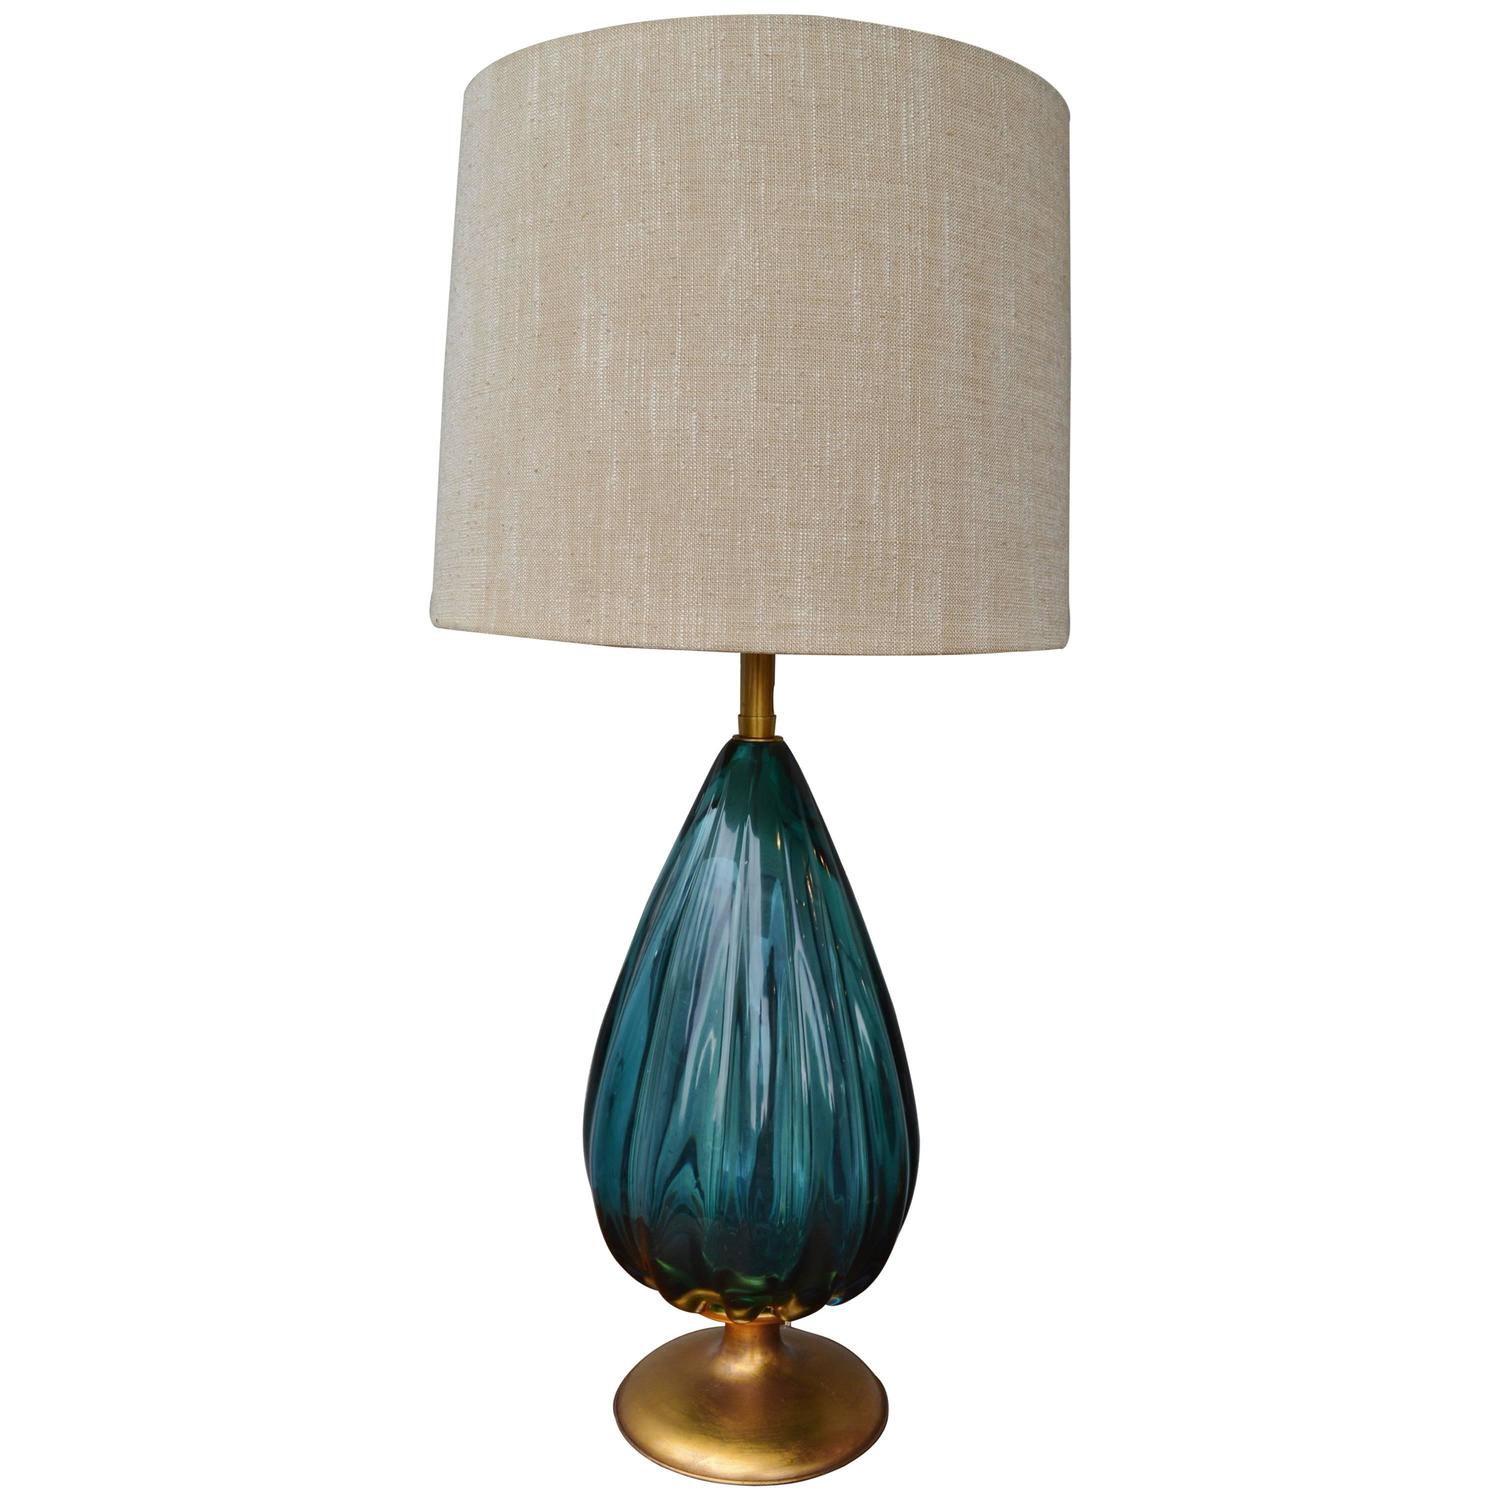 The Marbro Lamp Company Table Lamps - 150 For Sale at 1stdibs